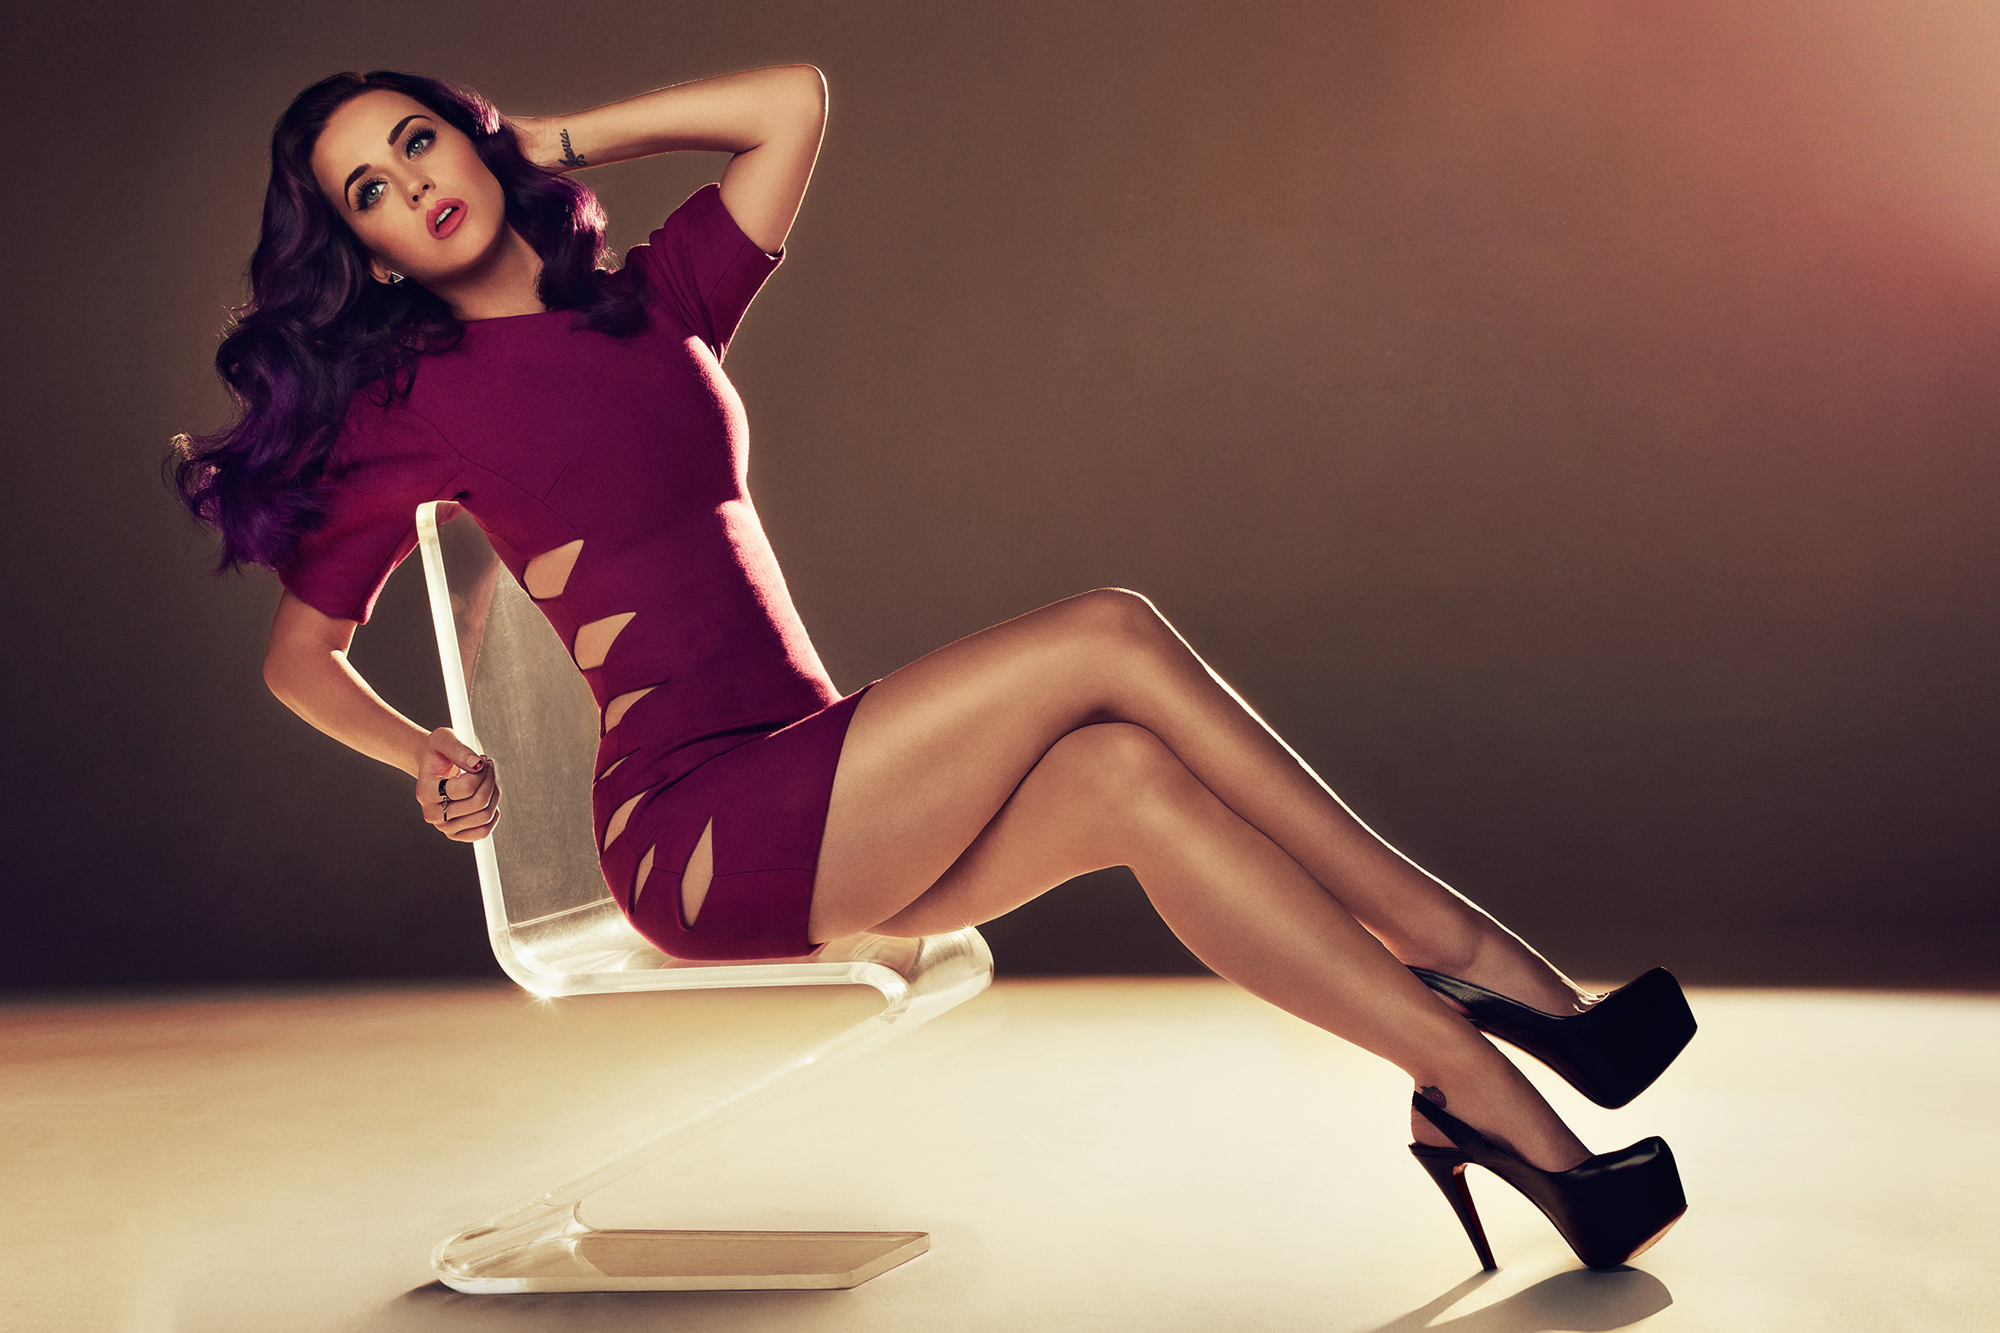 Katy Perry photo #457034